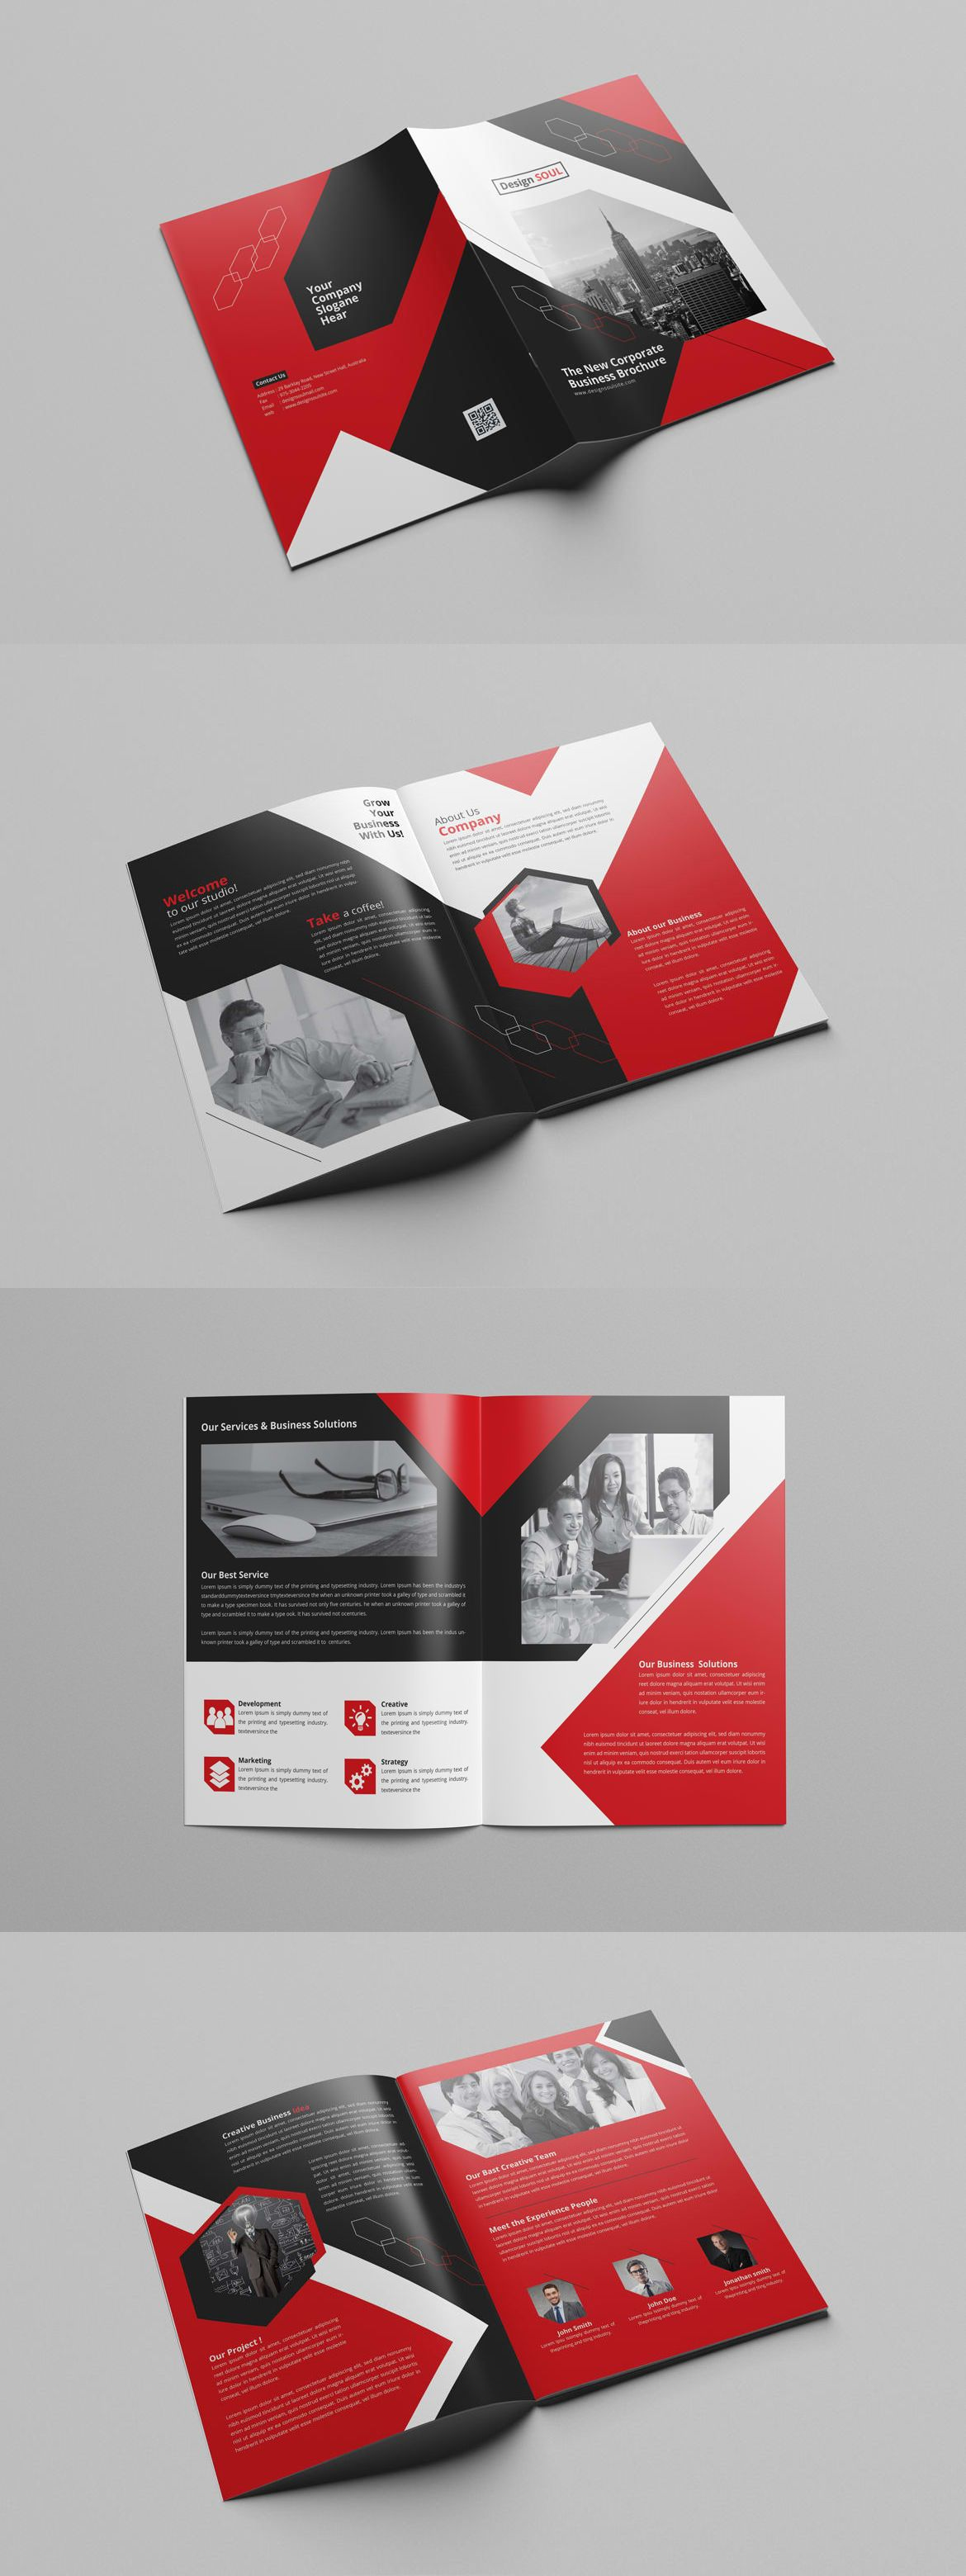 Corporate Brochure Template InDesign INDD Unlimited Downloads - Brochure template for indesign